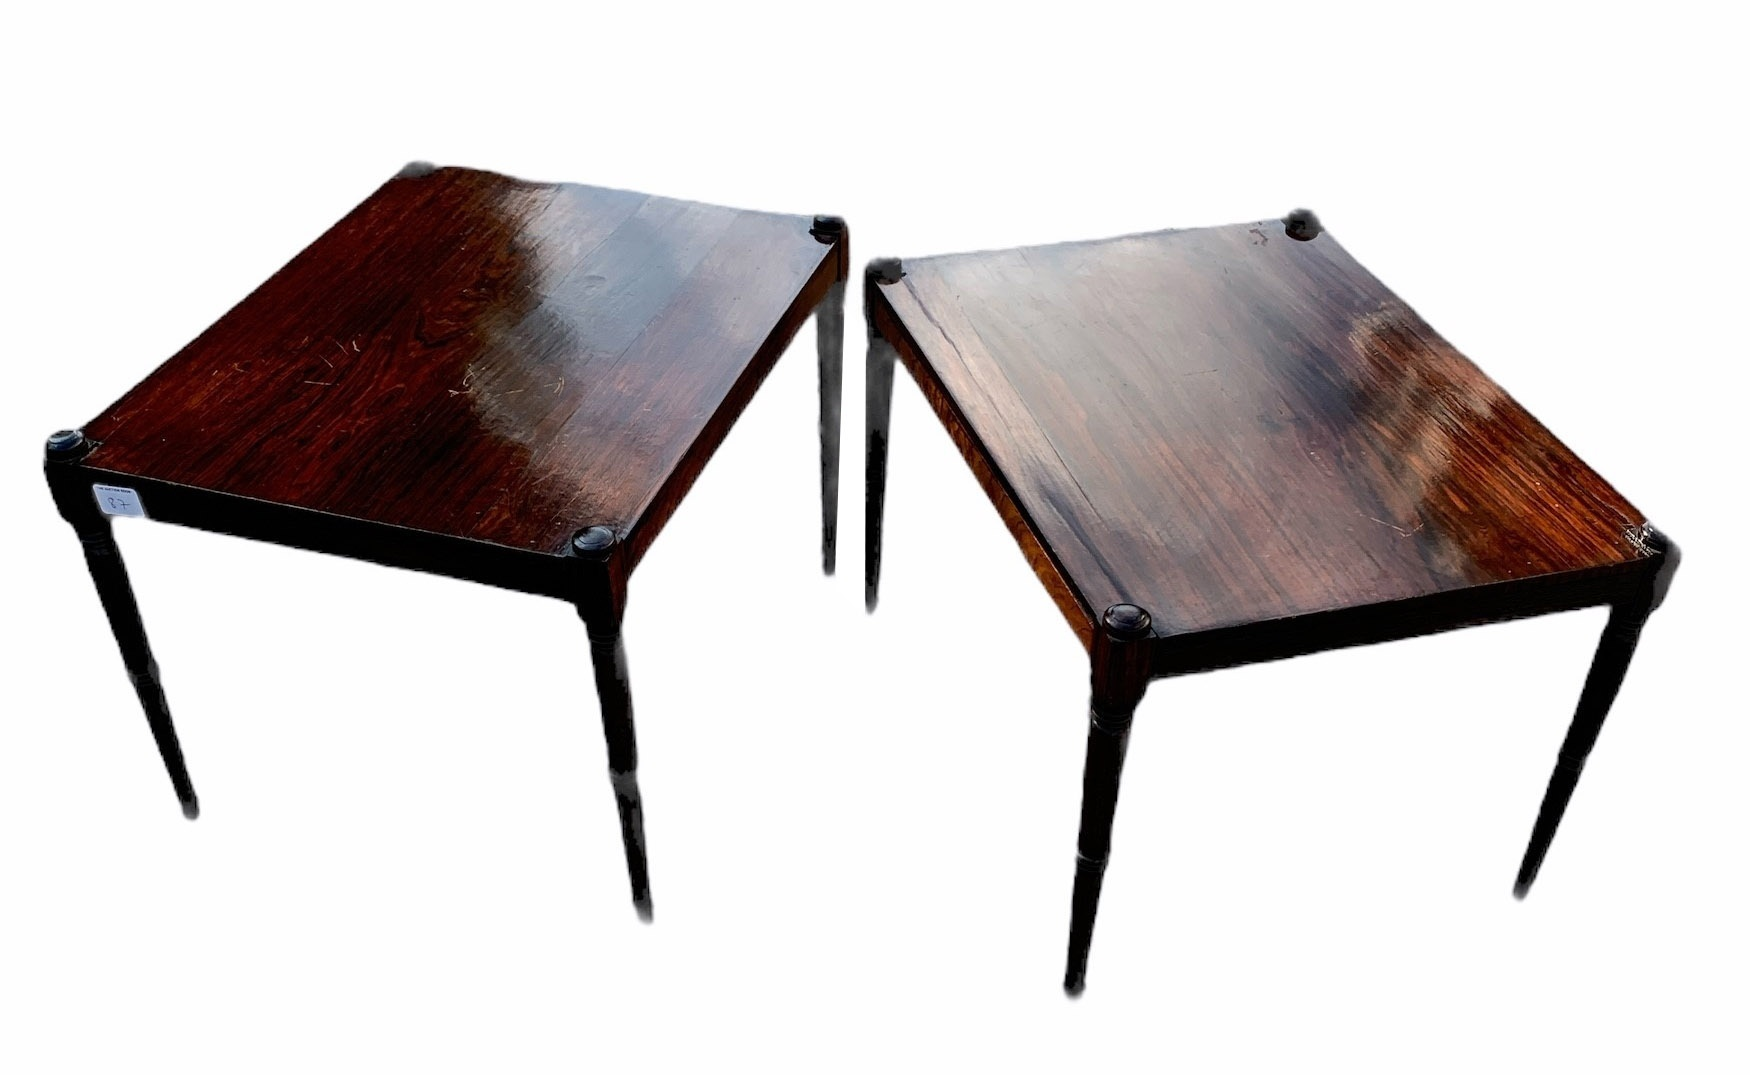 A PAIR OF 19TH CENTURY ROSEWOOD SIDE TABLES Raised on turned legs. (h 32.5cm x d 38.5cm x w 50cm)